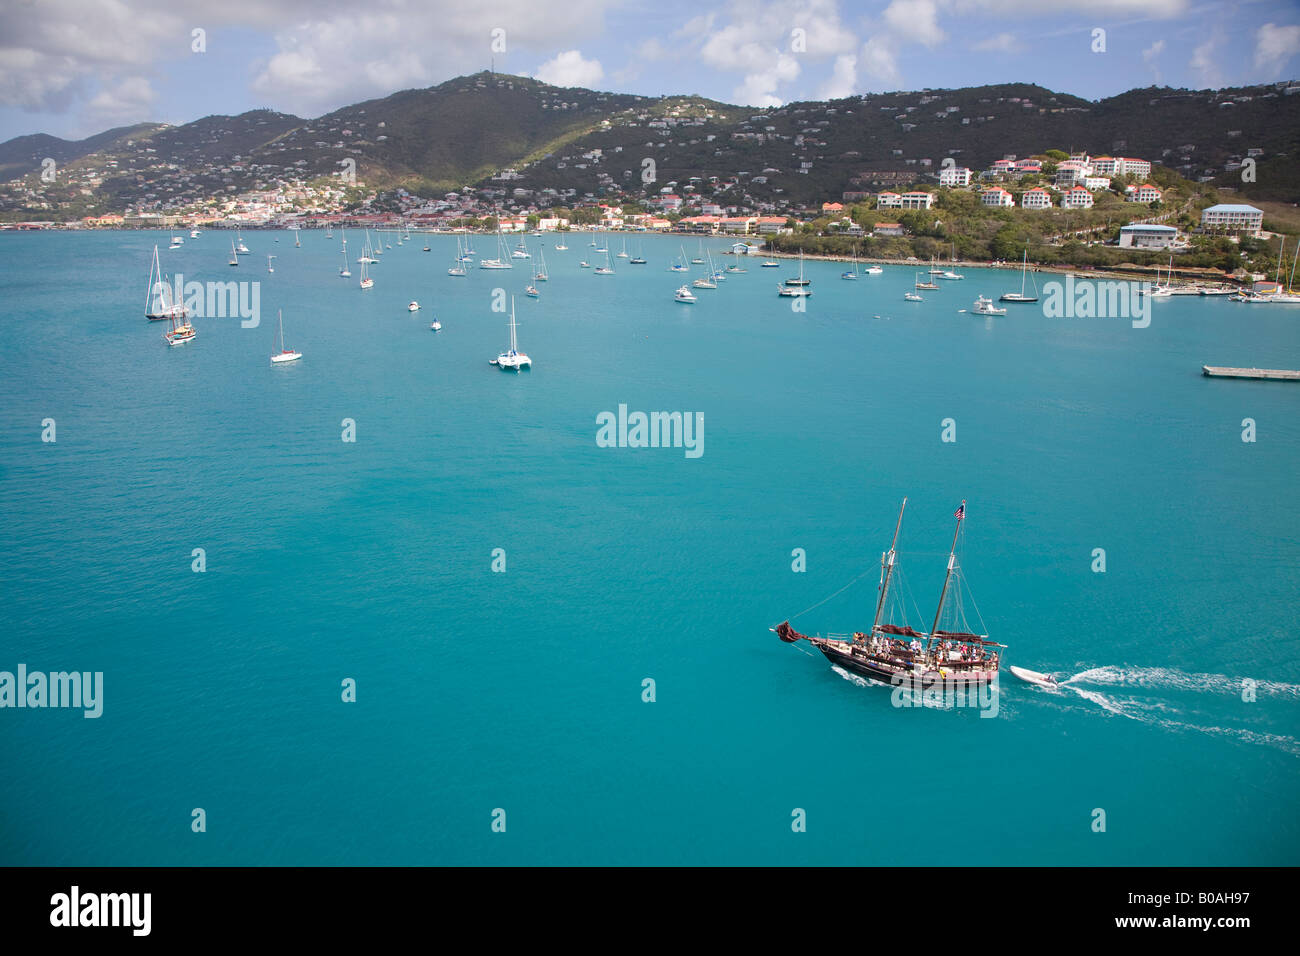 Tourist sail boat in the blue waters of the harbor of St Thomas Charlotte Amalie West Indies Caribbean Stock Photo